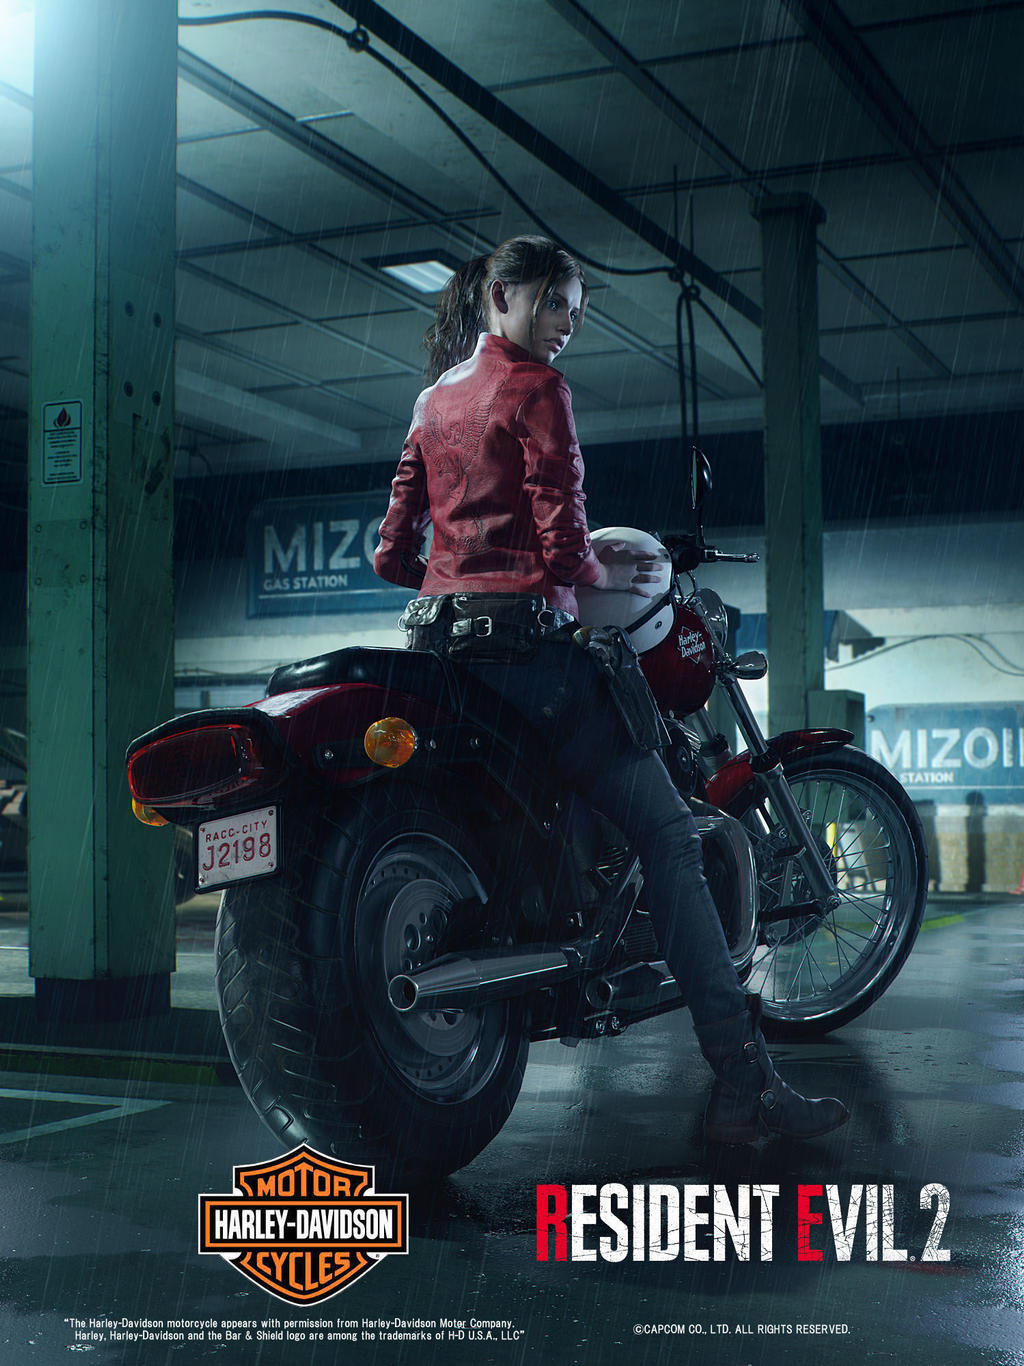 Resident Evil 2 Remake Claire Redfield Poster By Xgamergreaserx On Deviantart